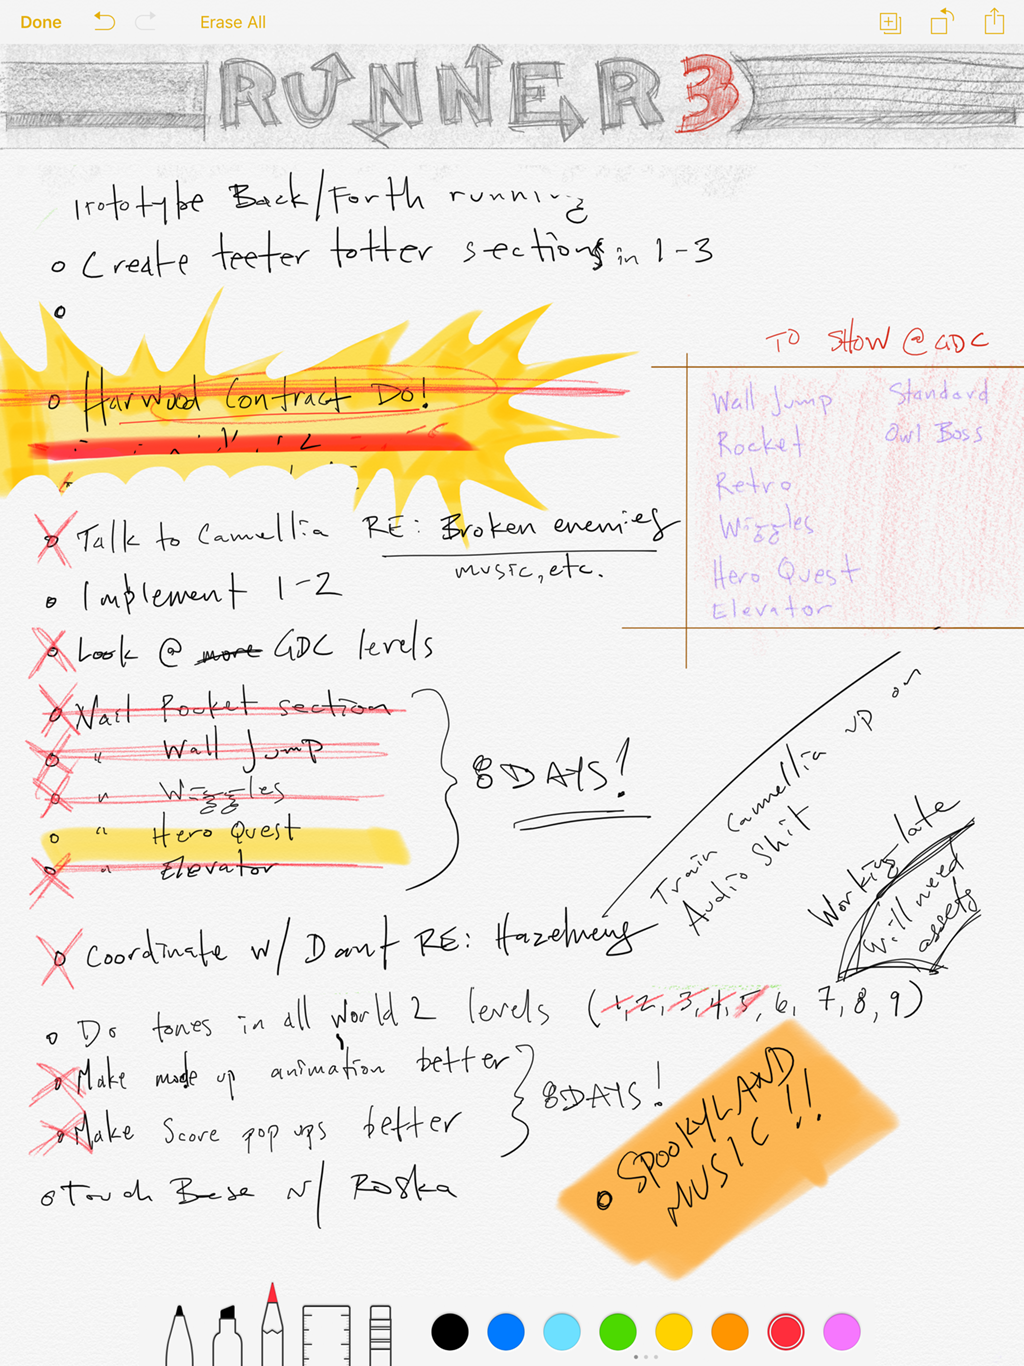 Runner3 - Daily Notes - 20170208a.PNG